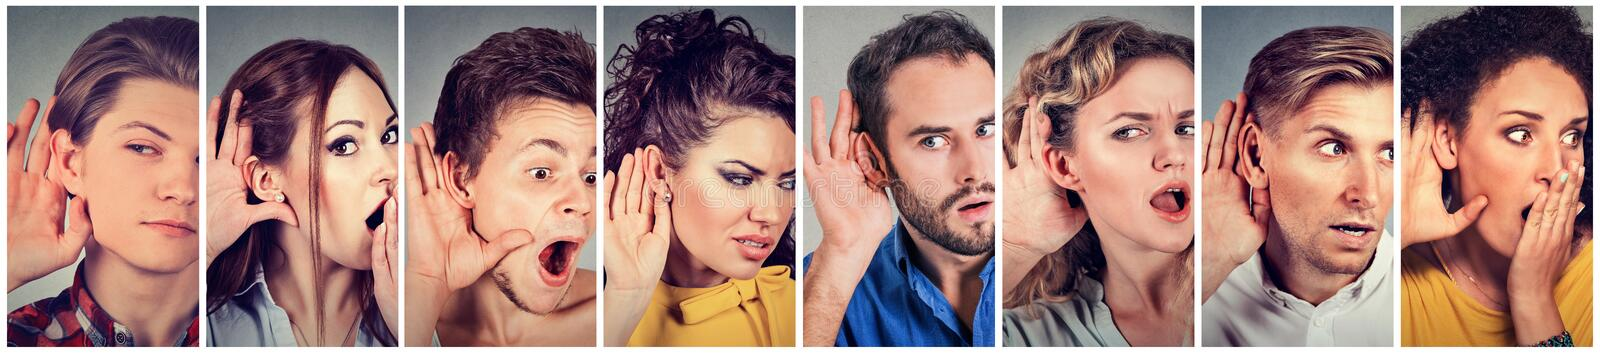 Multiethnic group of young people men and women listening eavesdropping royalty free stock photography